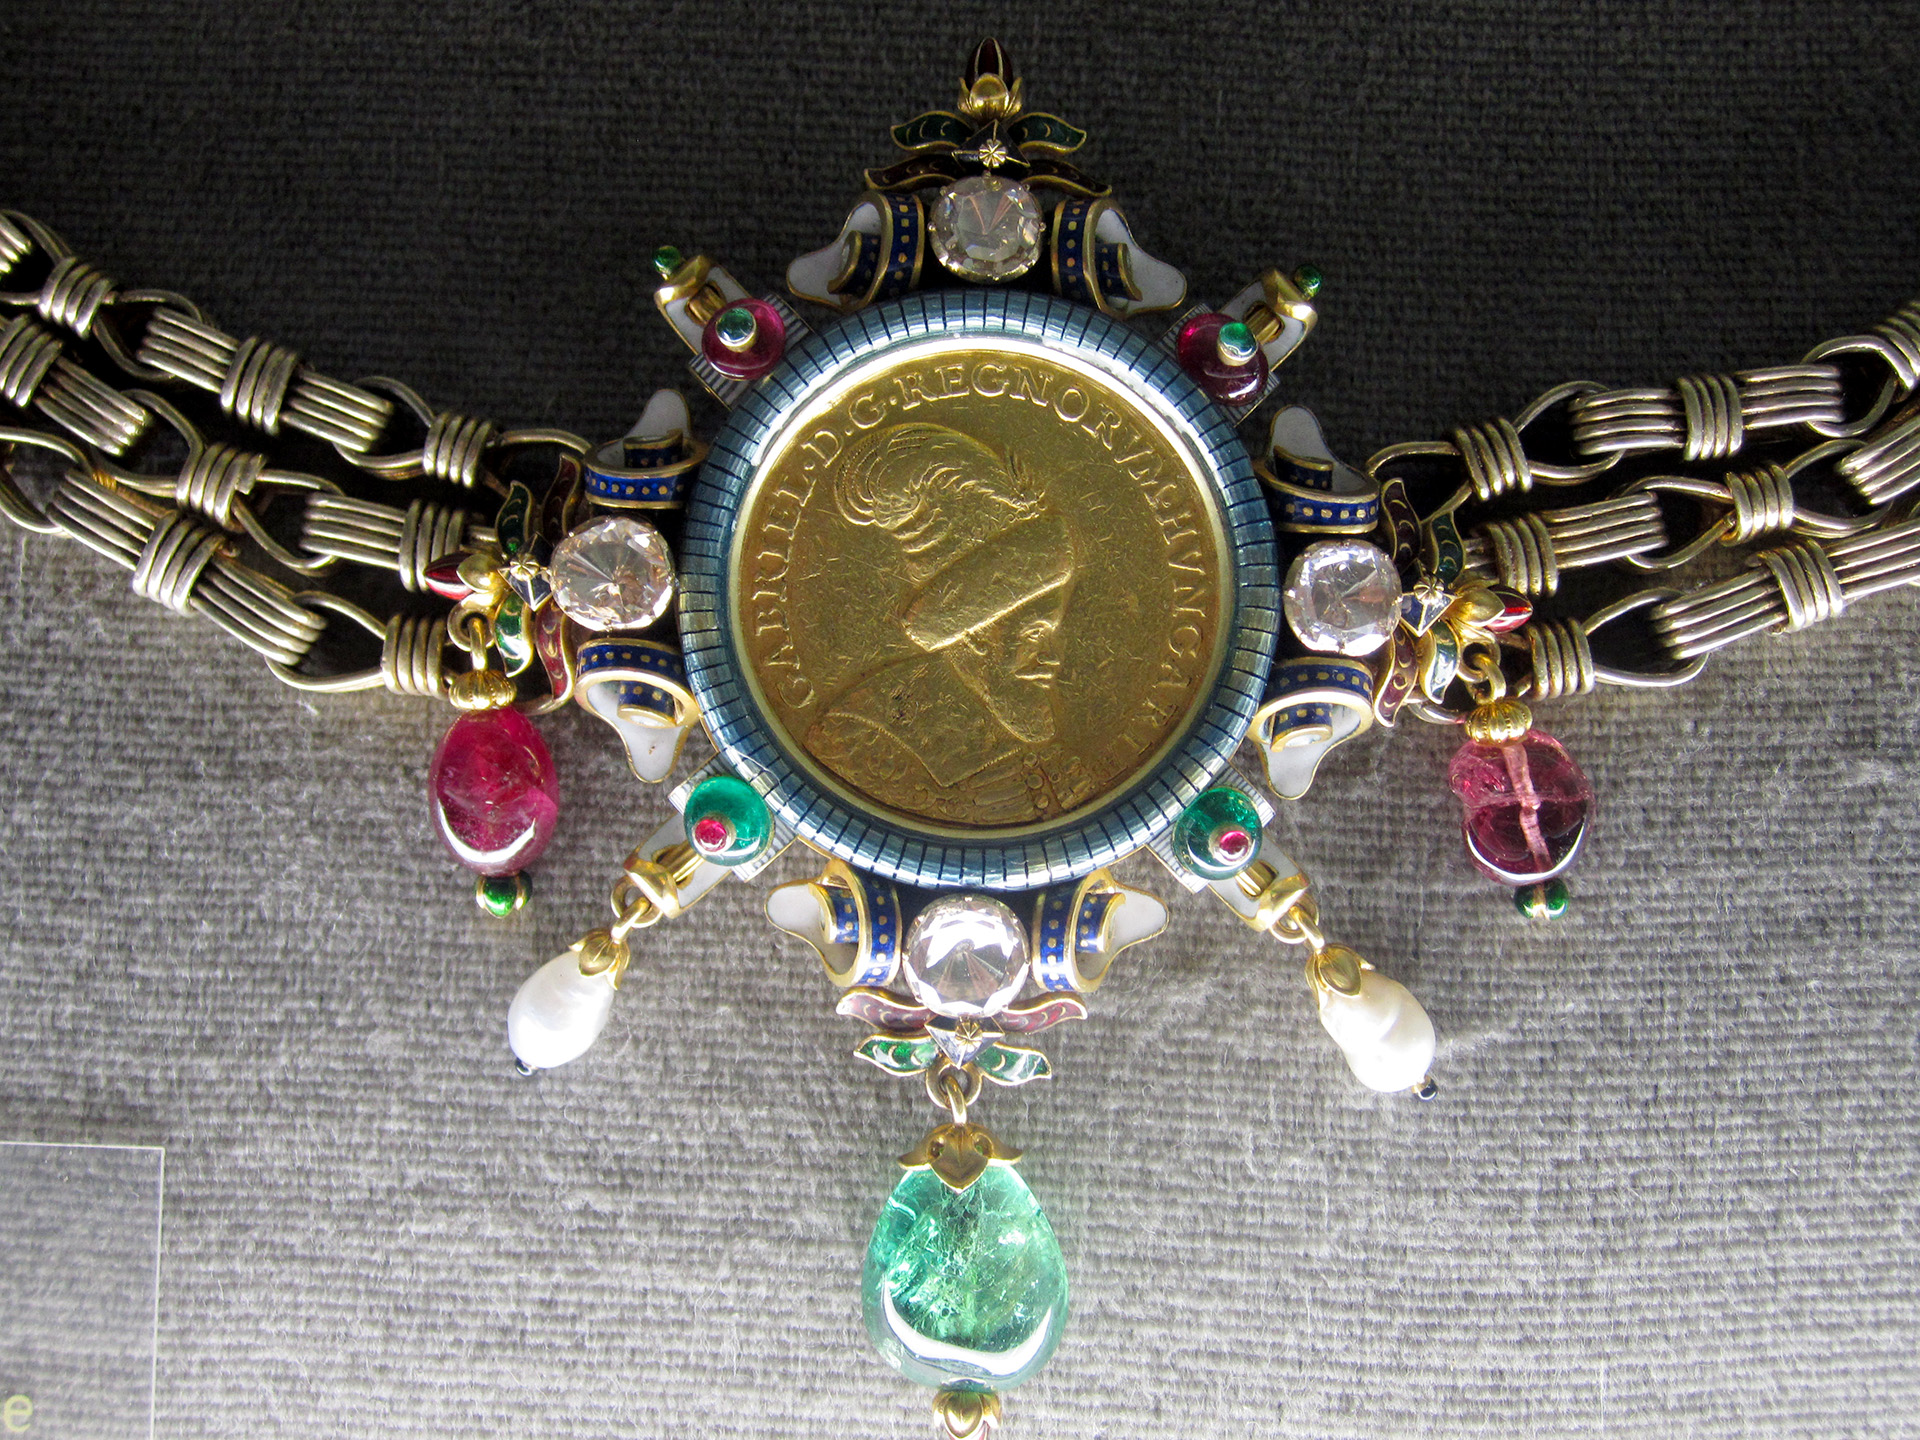 A necklace inside the treasury at the castle.